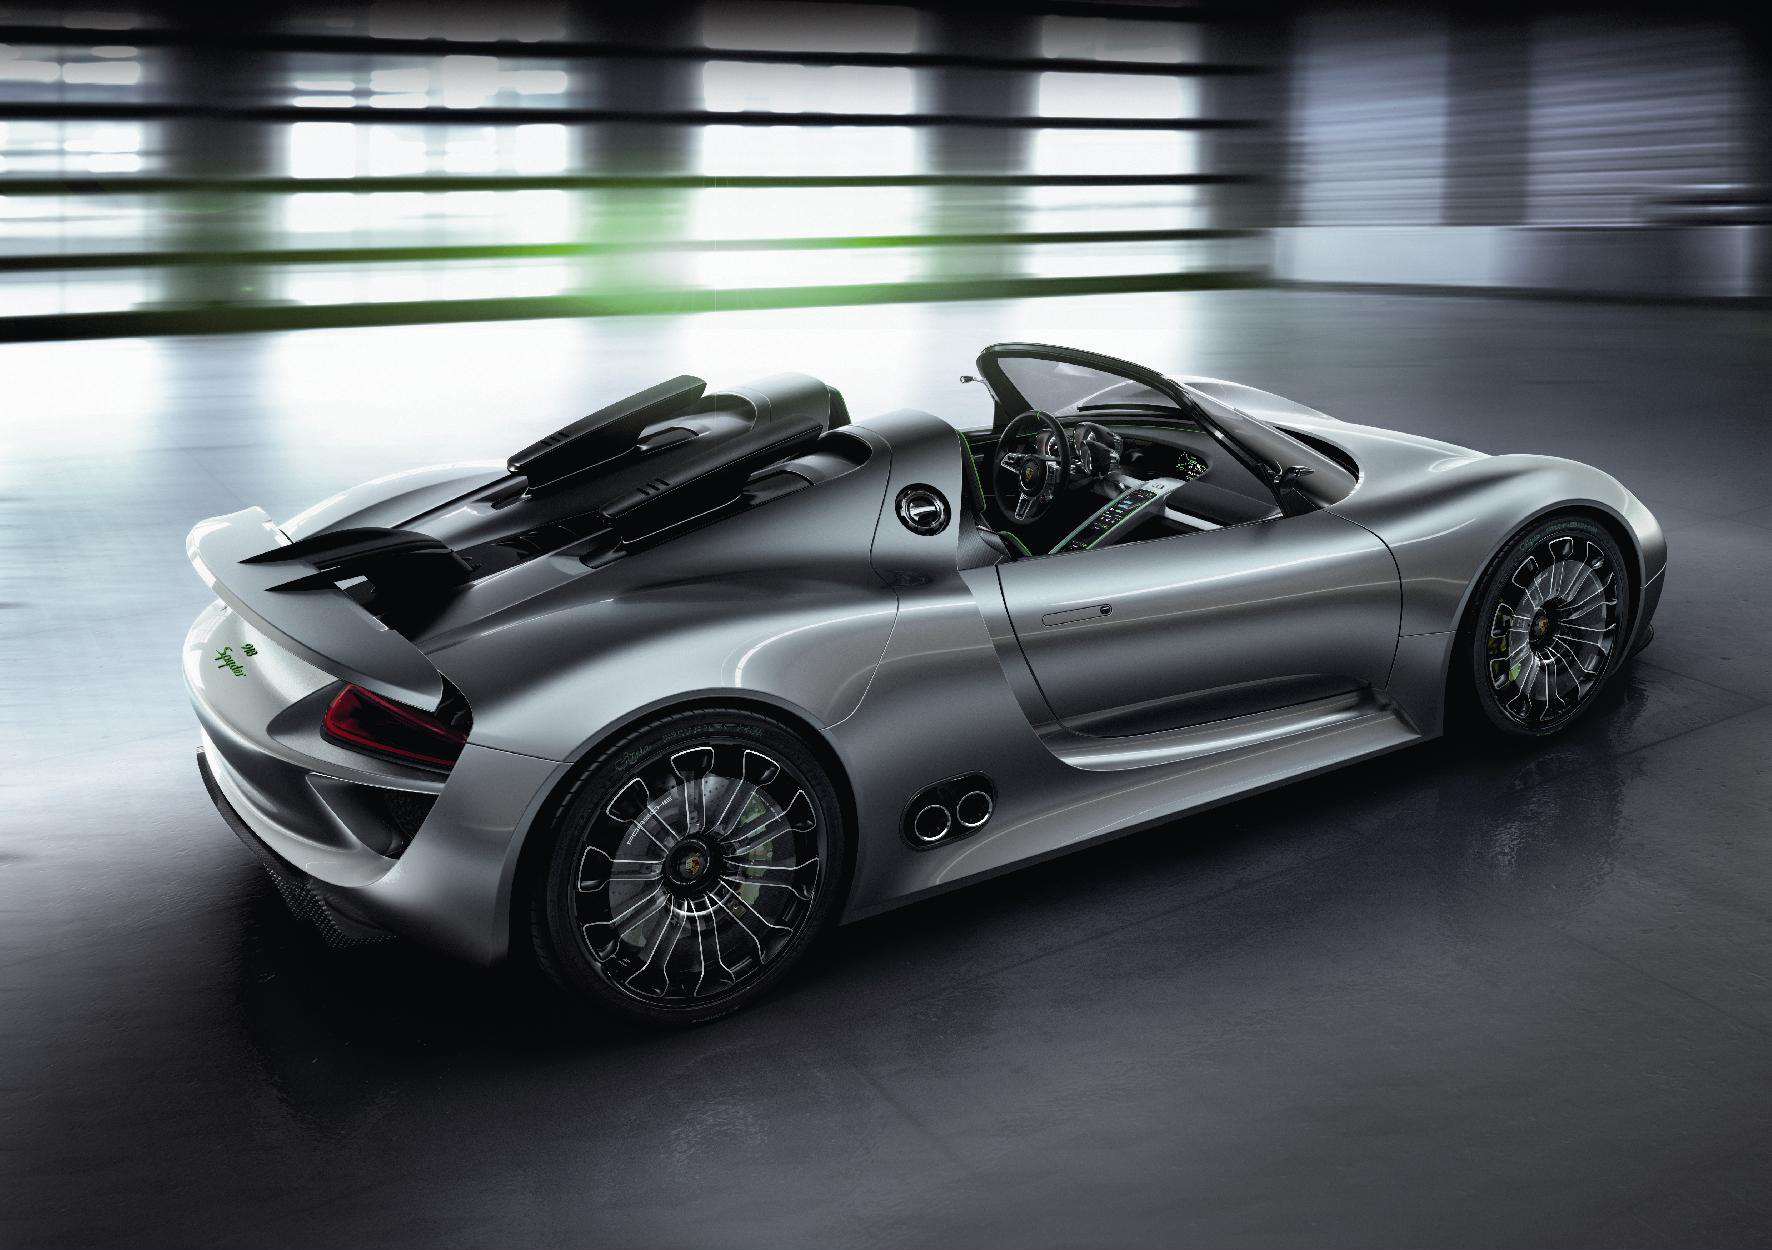 The 918 takes the classic Spyder fomat and plugs it into the 21st century